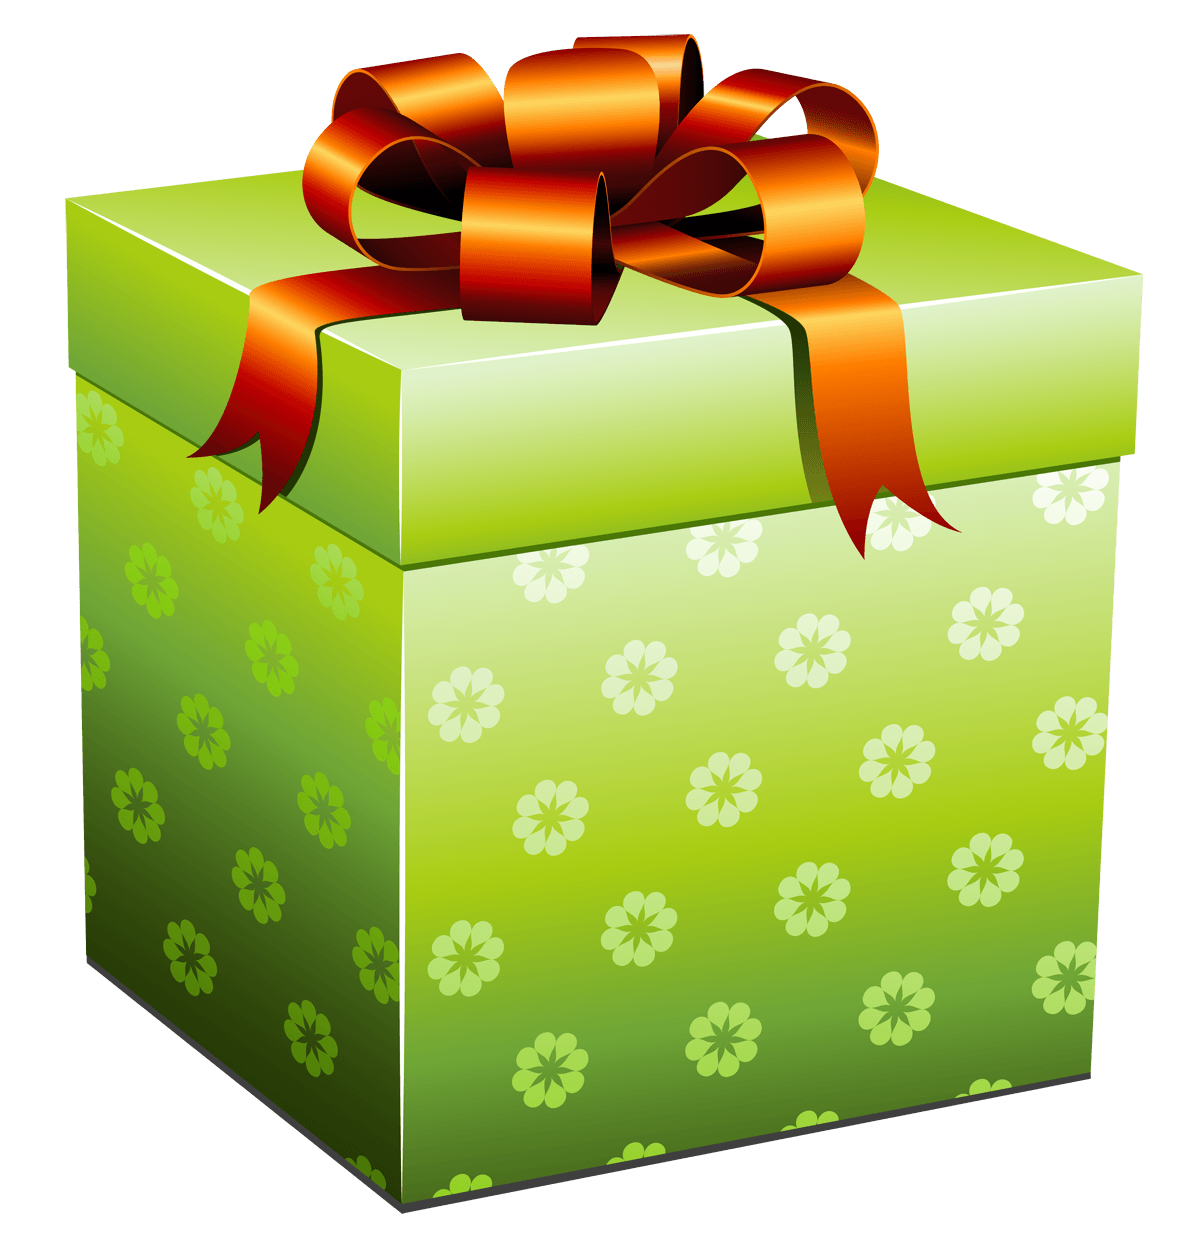 1200x1242 Download Gift Free Png Photo Images And Clipart Freepngimg